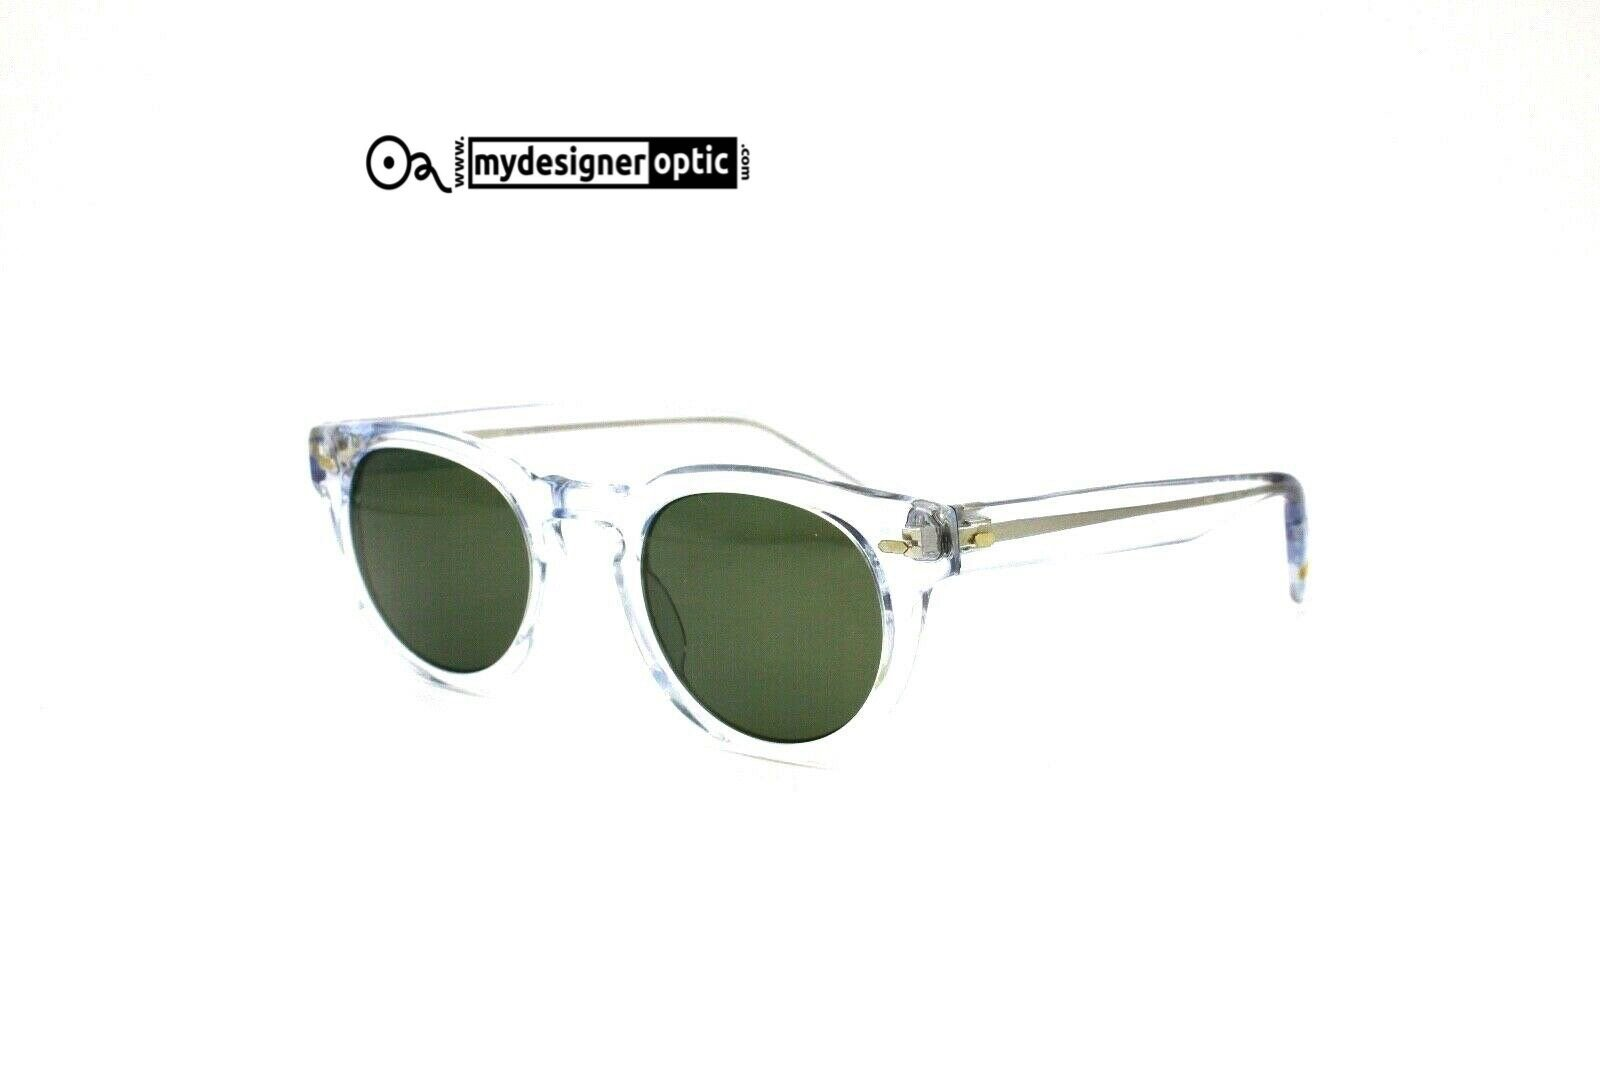 Paul Smith Sunglasses 45-22-140 PS-427 CRY Made in Japan - Mydesigneroptic